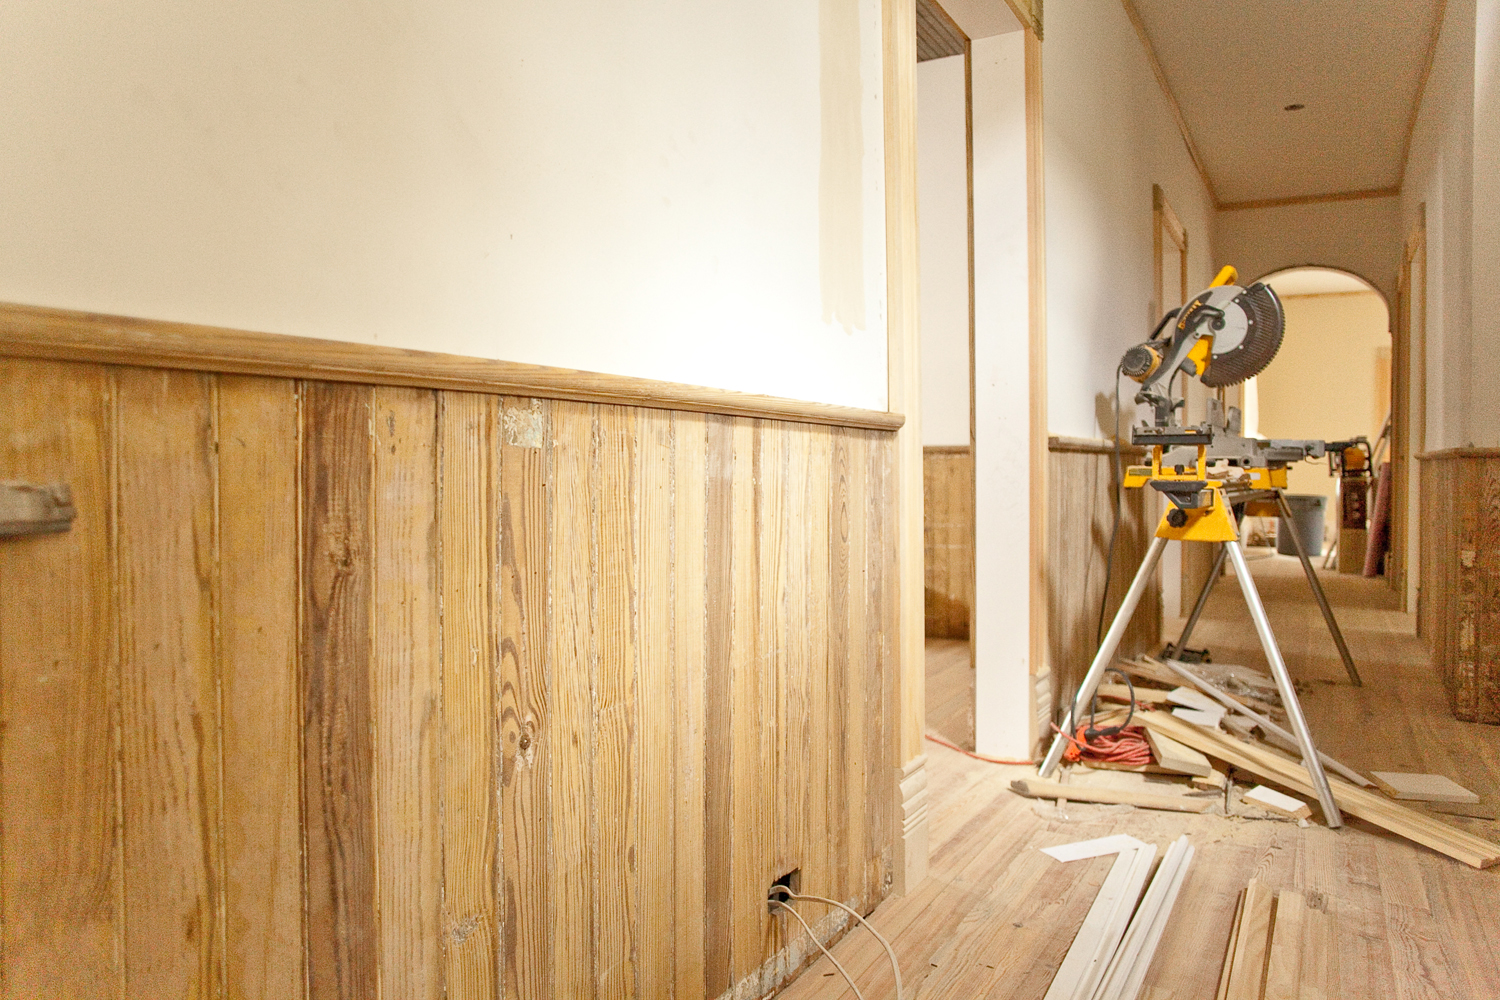 Pictures of wainscoting in